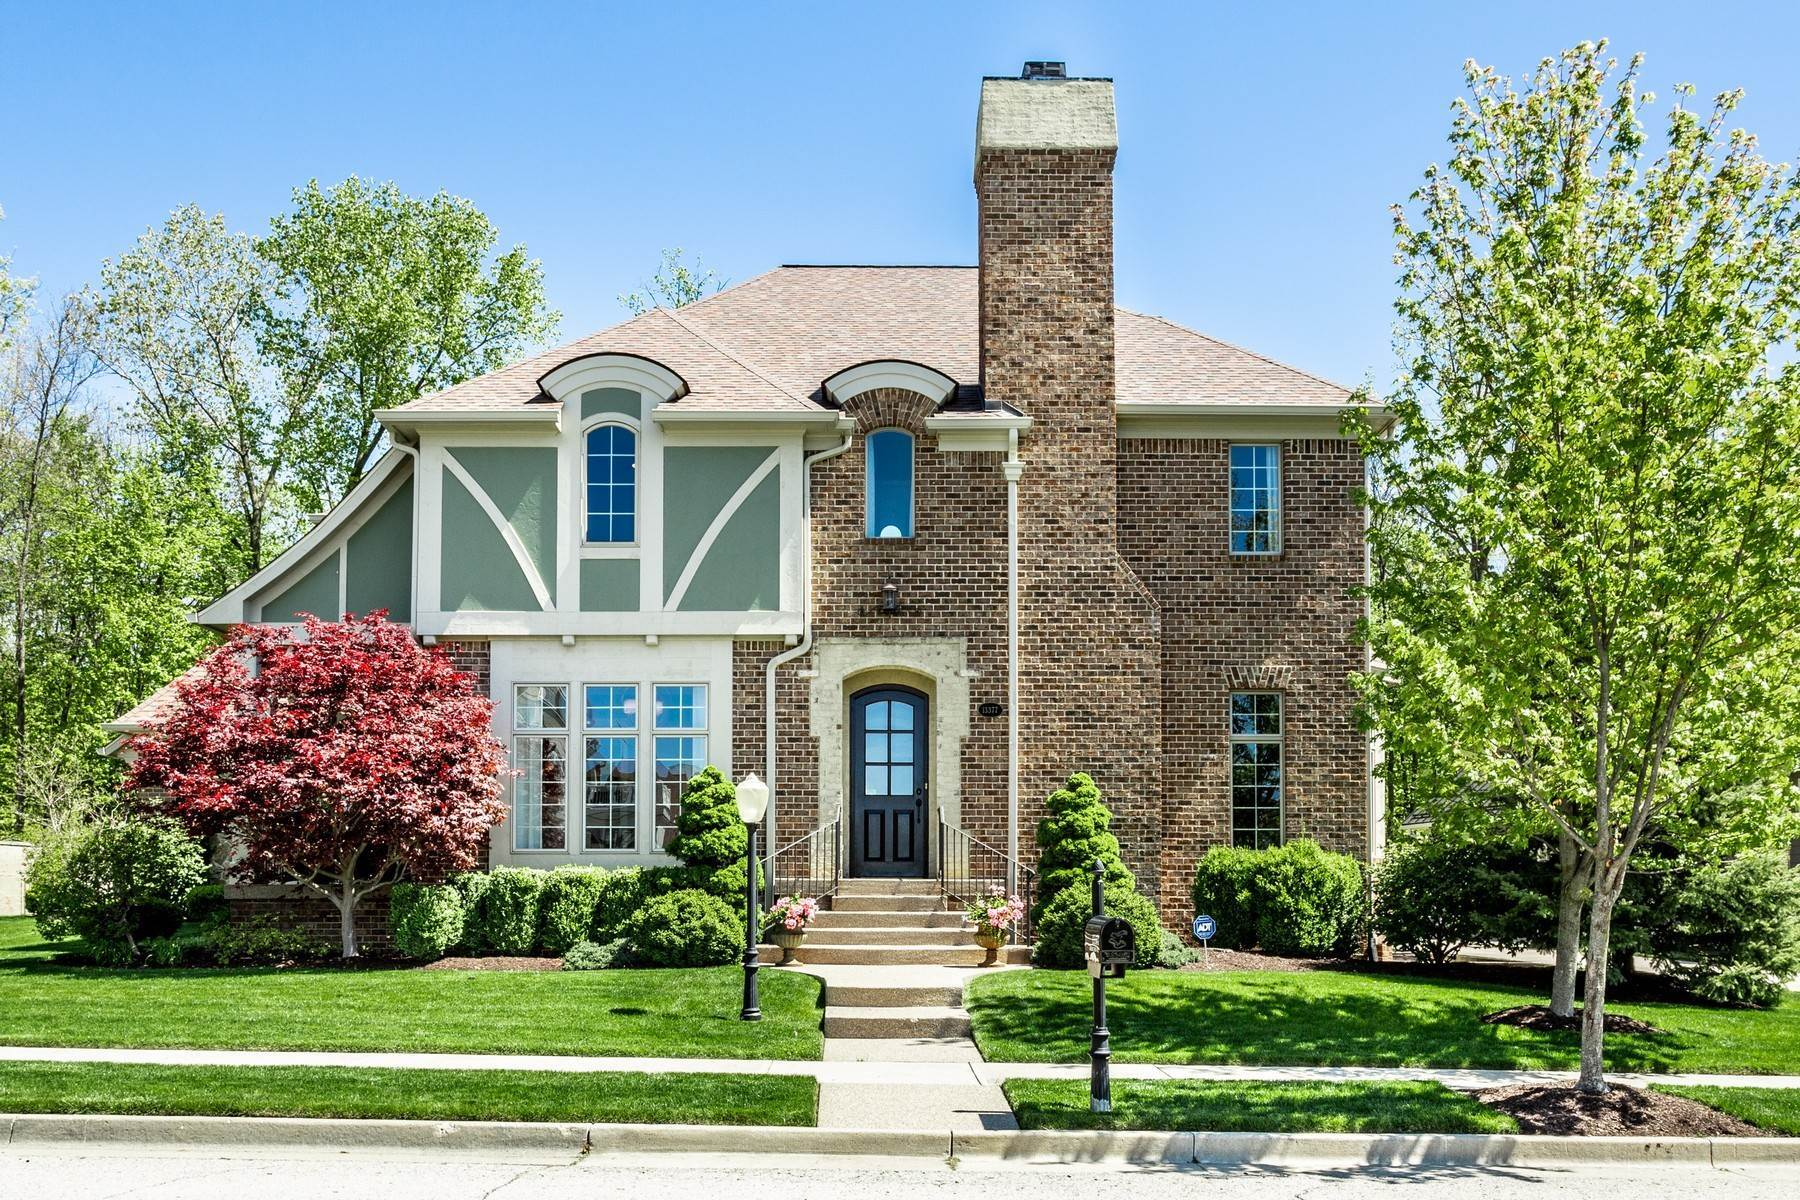 Single Family Homes for Sale at Stunning Home in Carmel 13377 Abercorn Street Carmel, Indiana 46032 United States